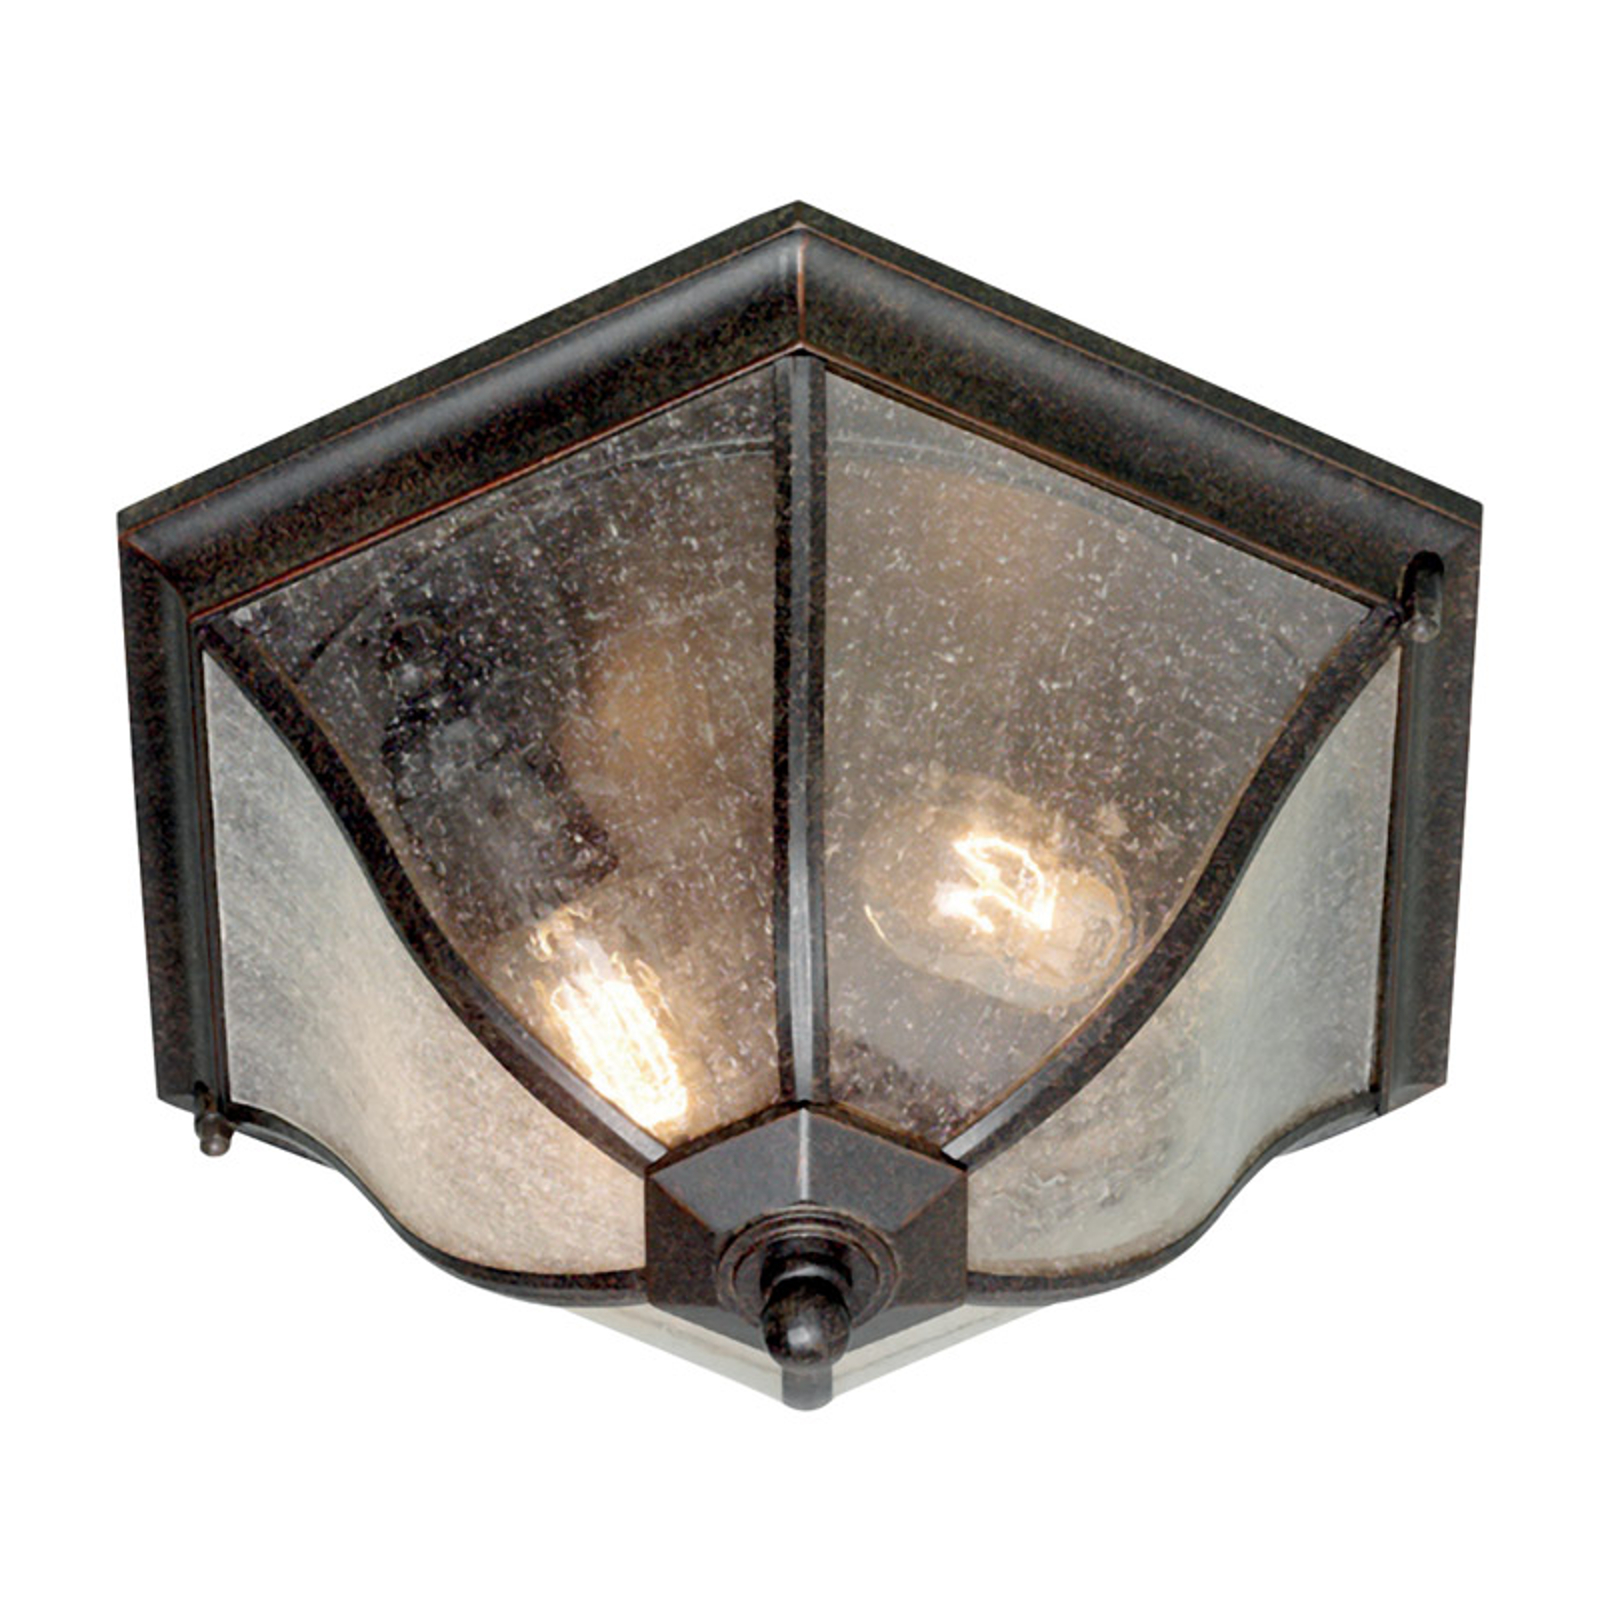 Bronze-coloured outdoor ceiling lamp New England_3048373_1